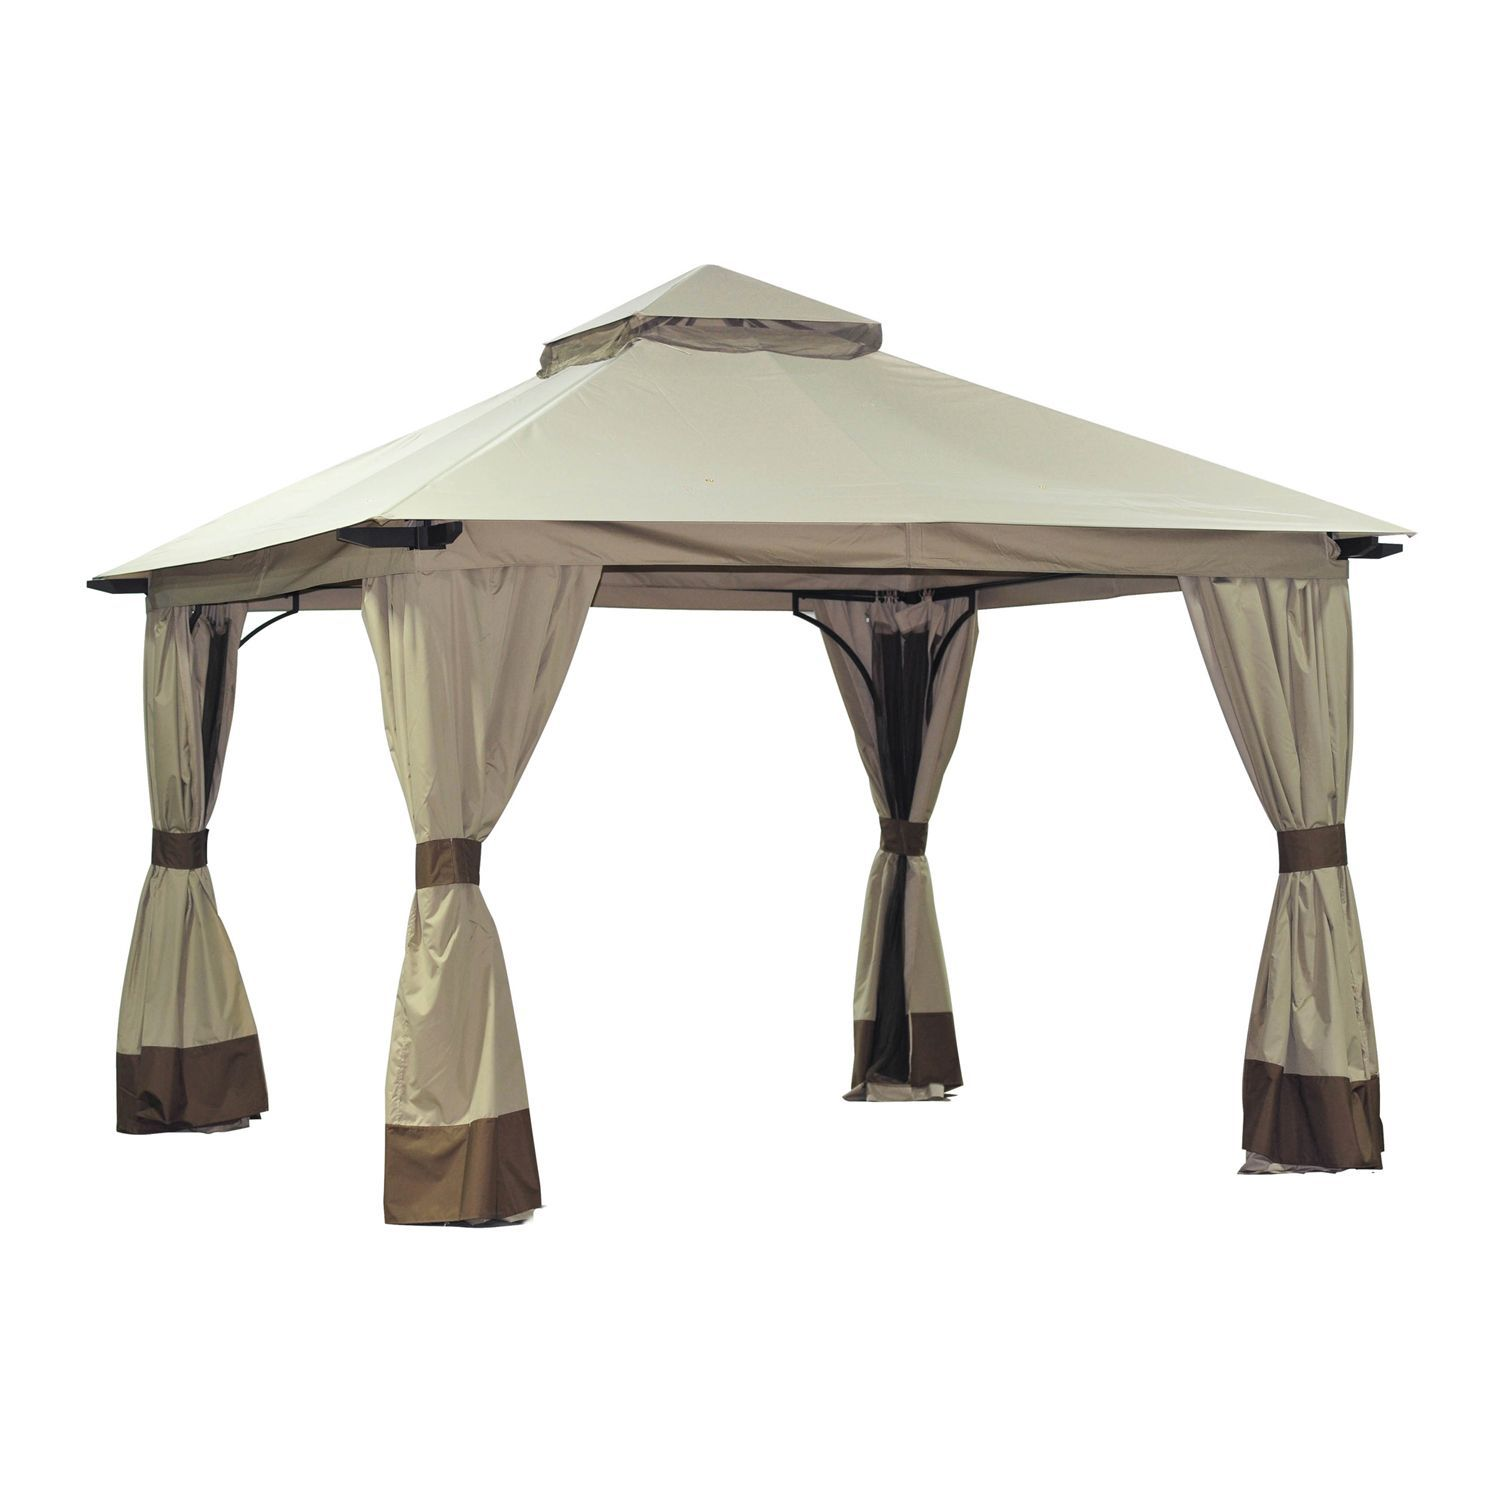 Tan brown gazebo replacement canopy covers privacy curtains canopies outdoor rooms